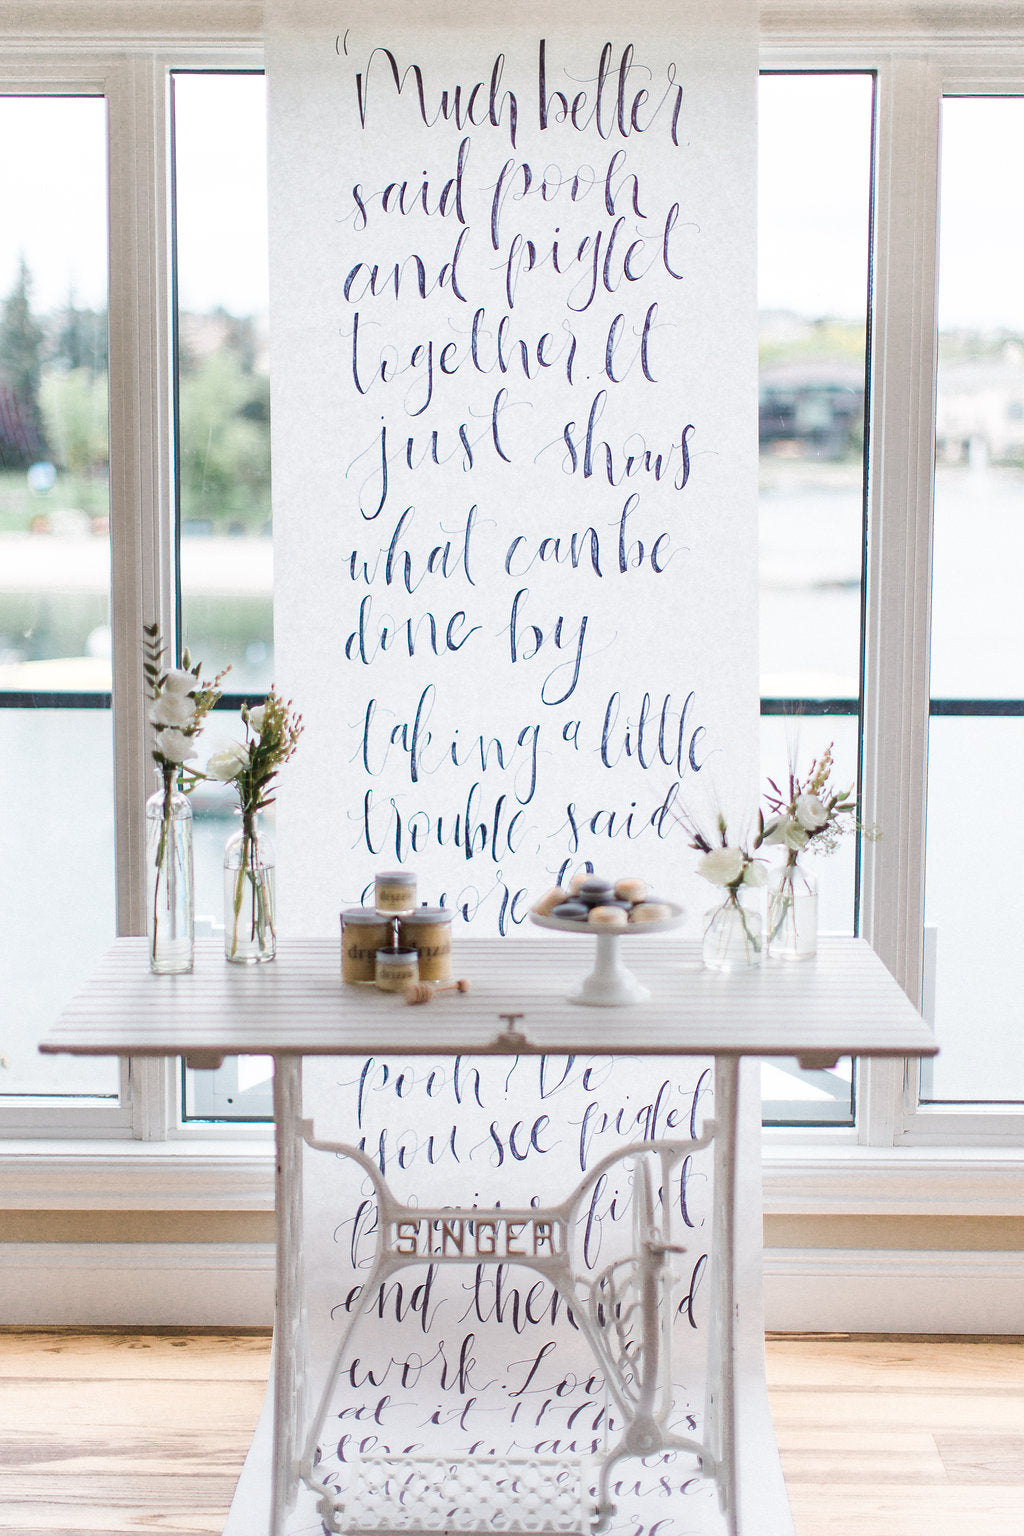 honey_on_table_with_flowers_calligraphy